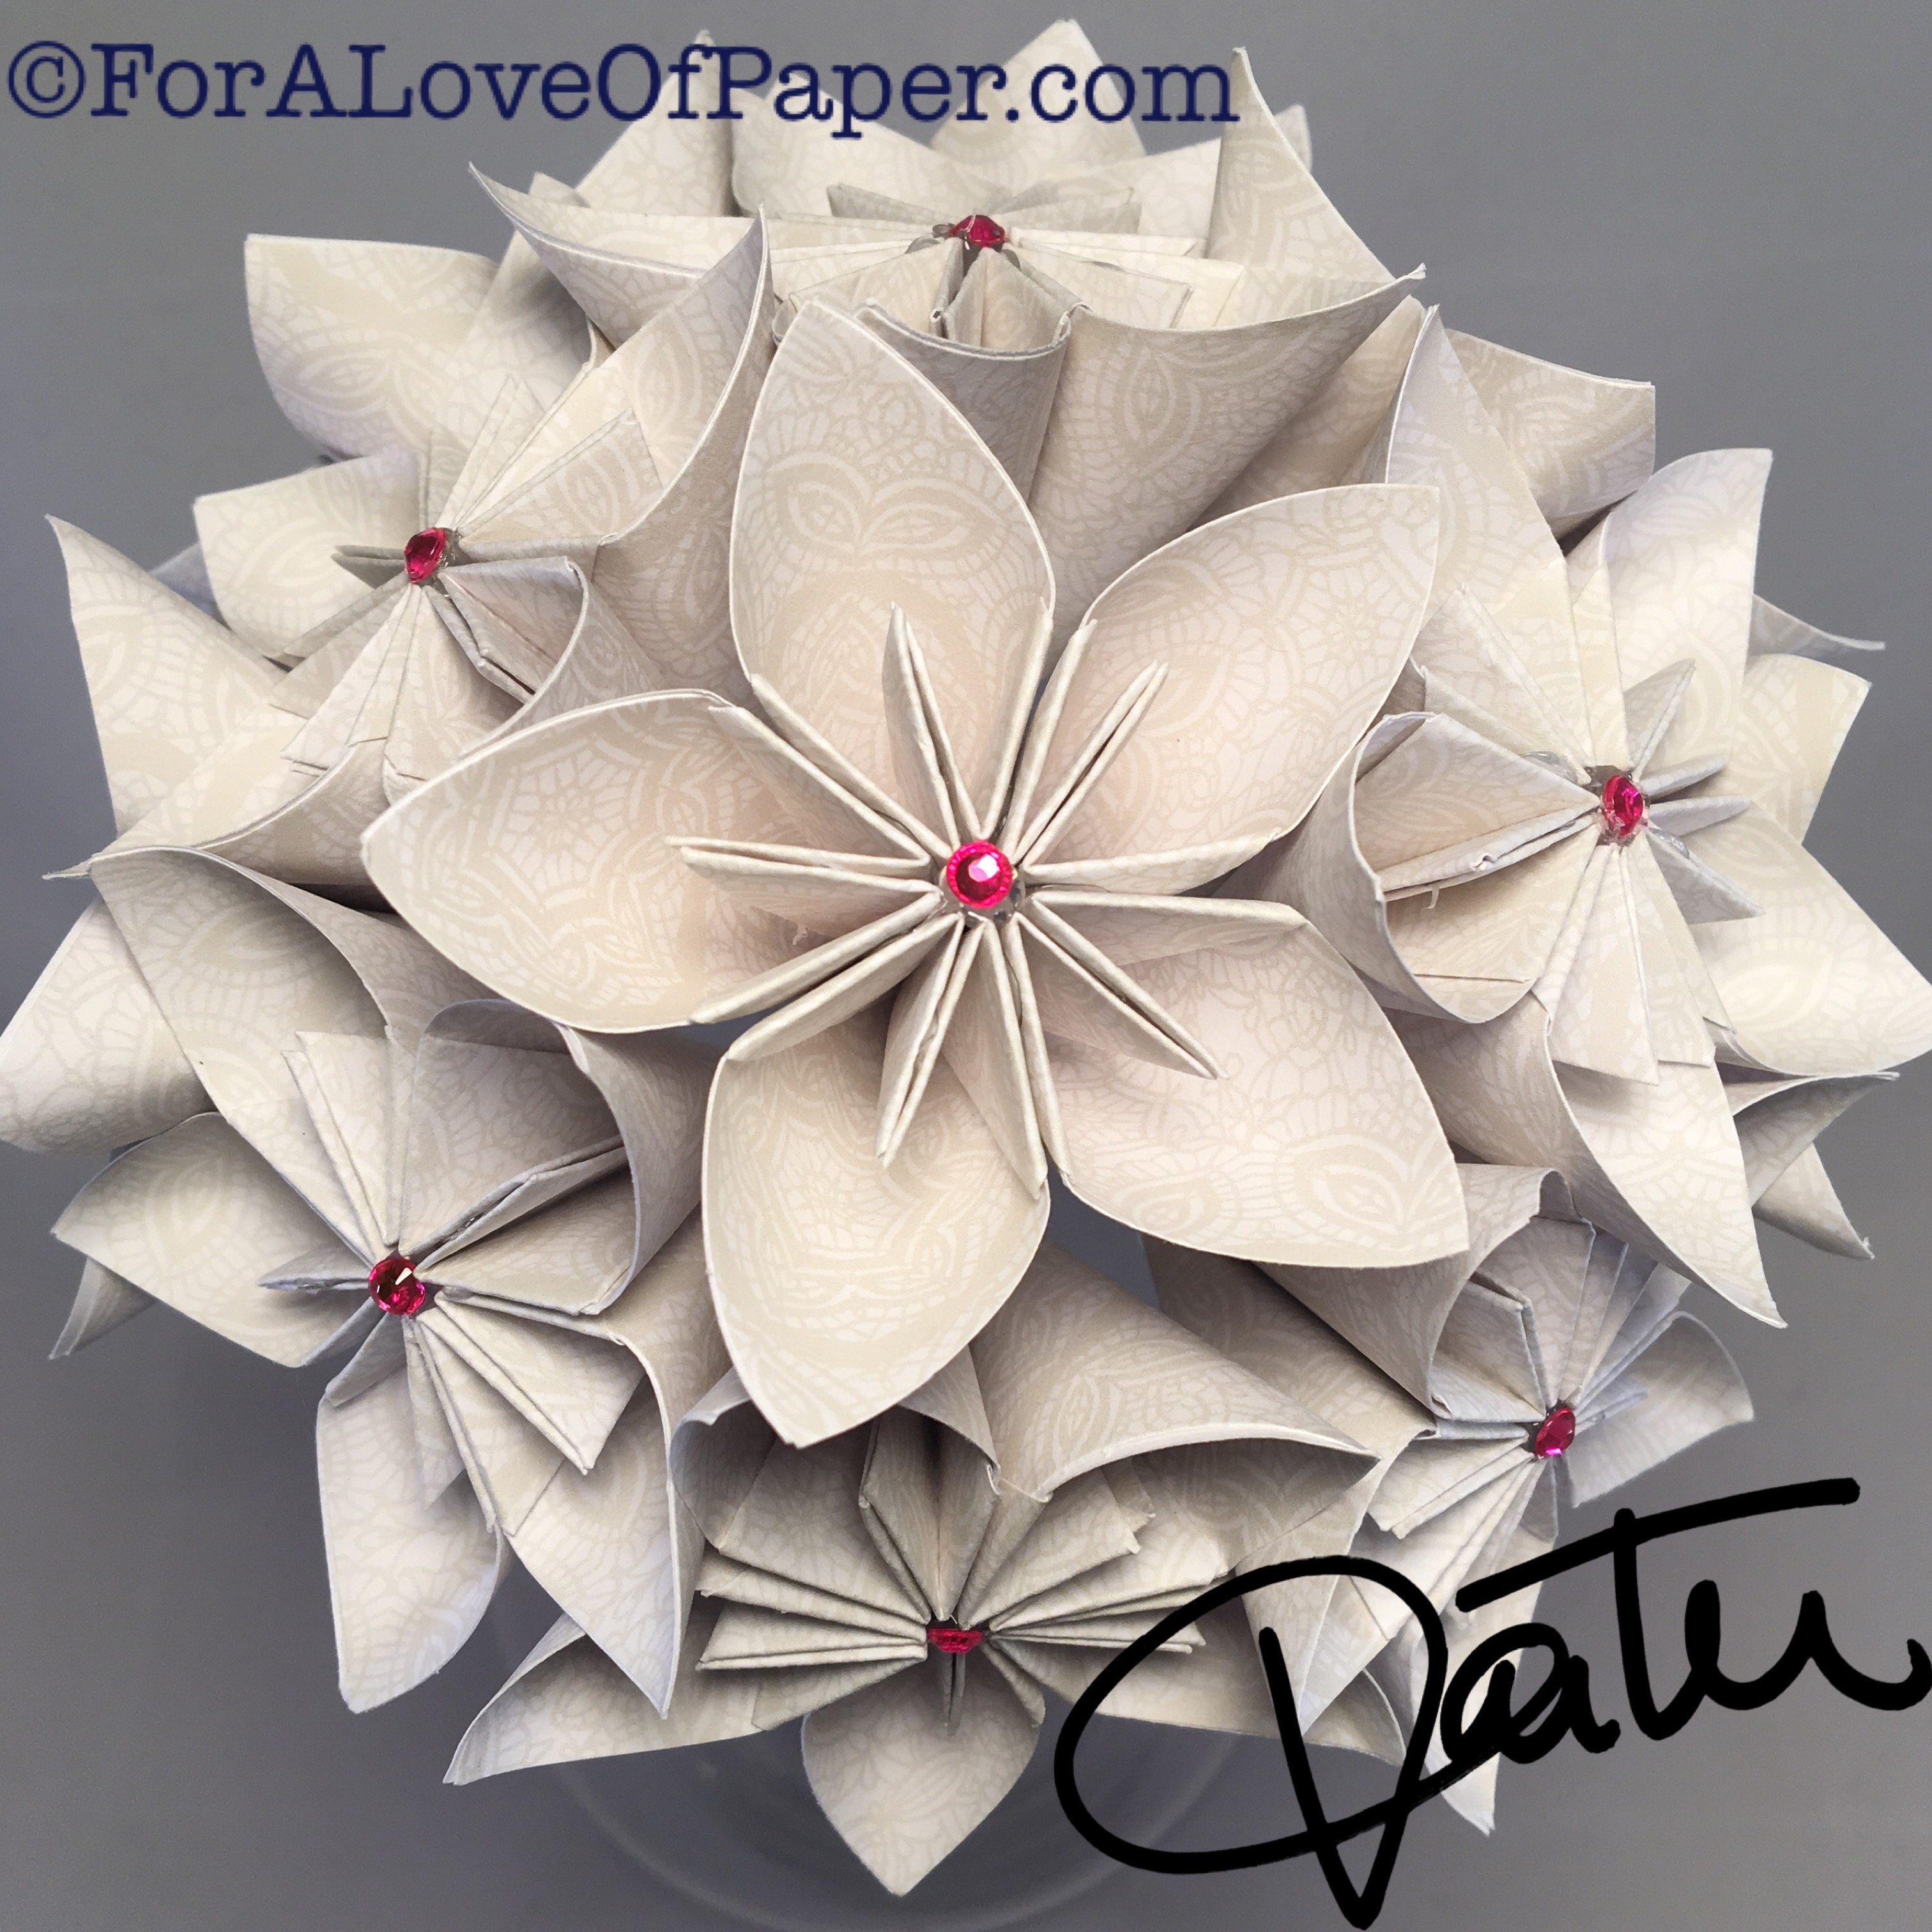 Paper flower bouquet made from cream colored paper with white pattern